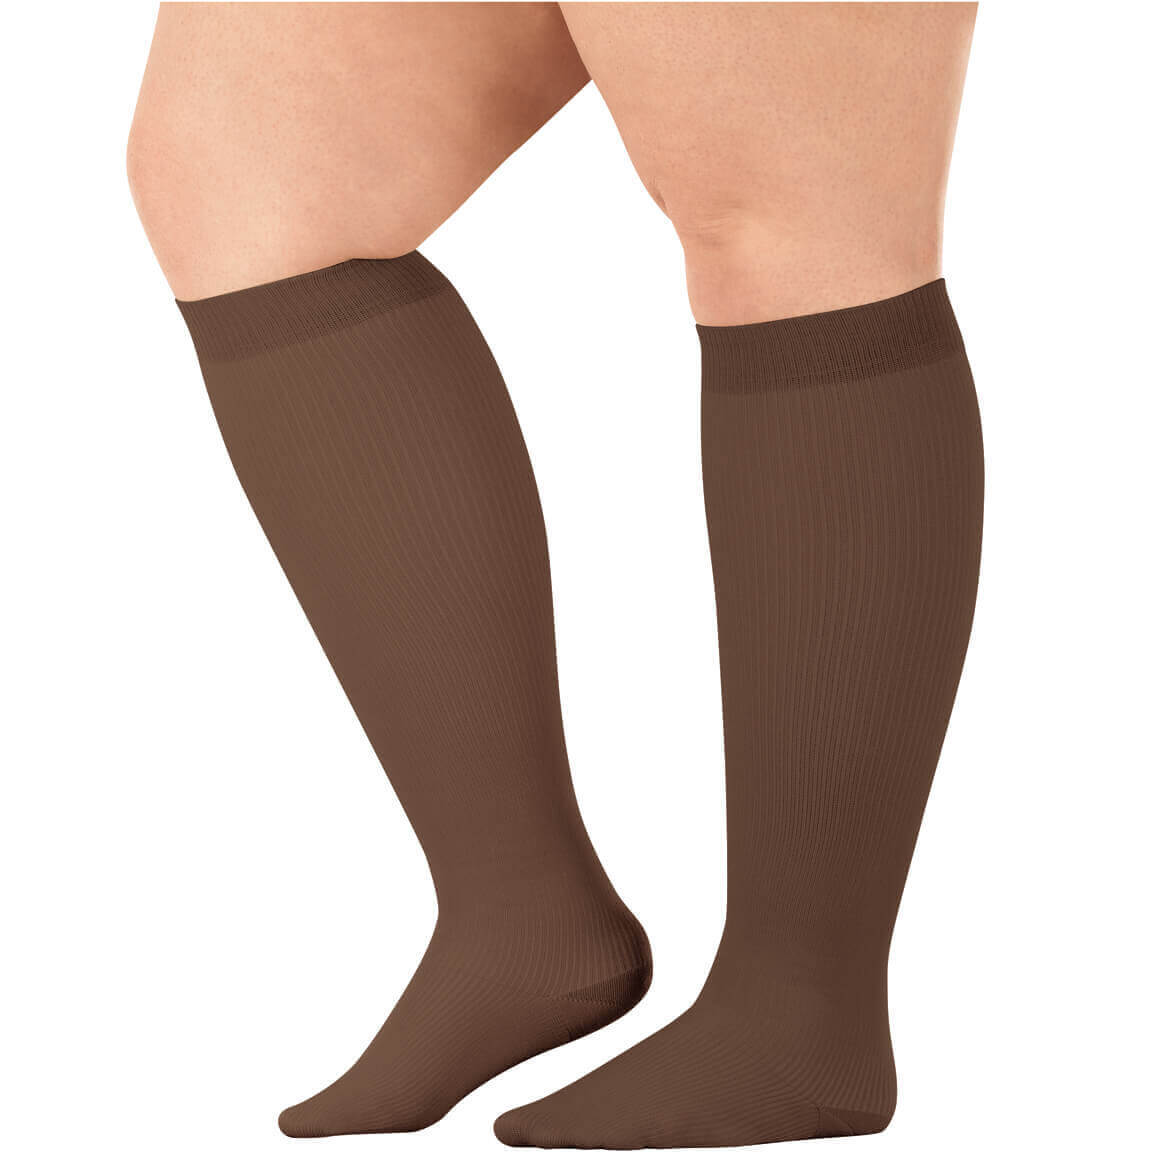 Silver StepsTM Wide Calf Compression Socks 8-15 mmHg, 3 Pair